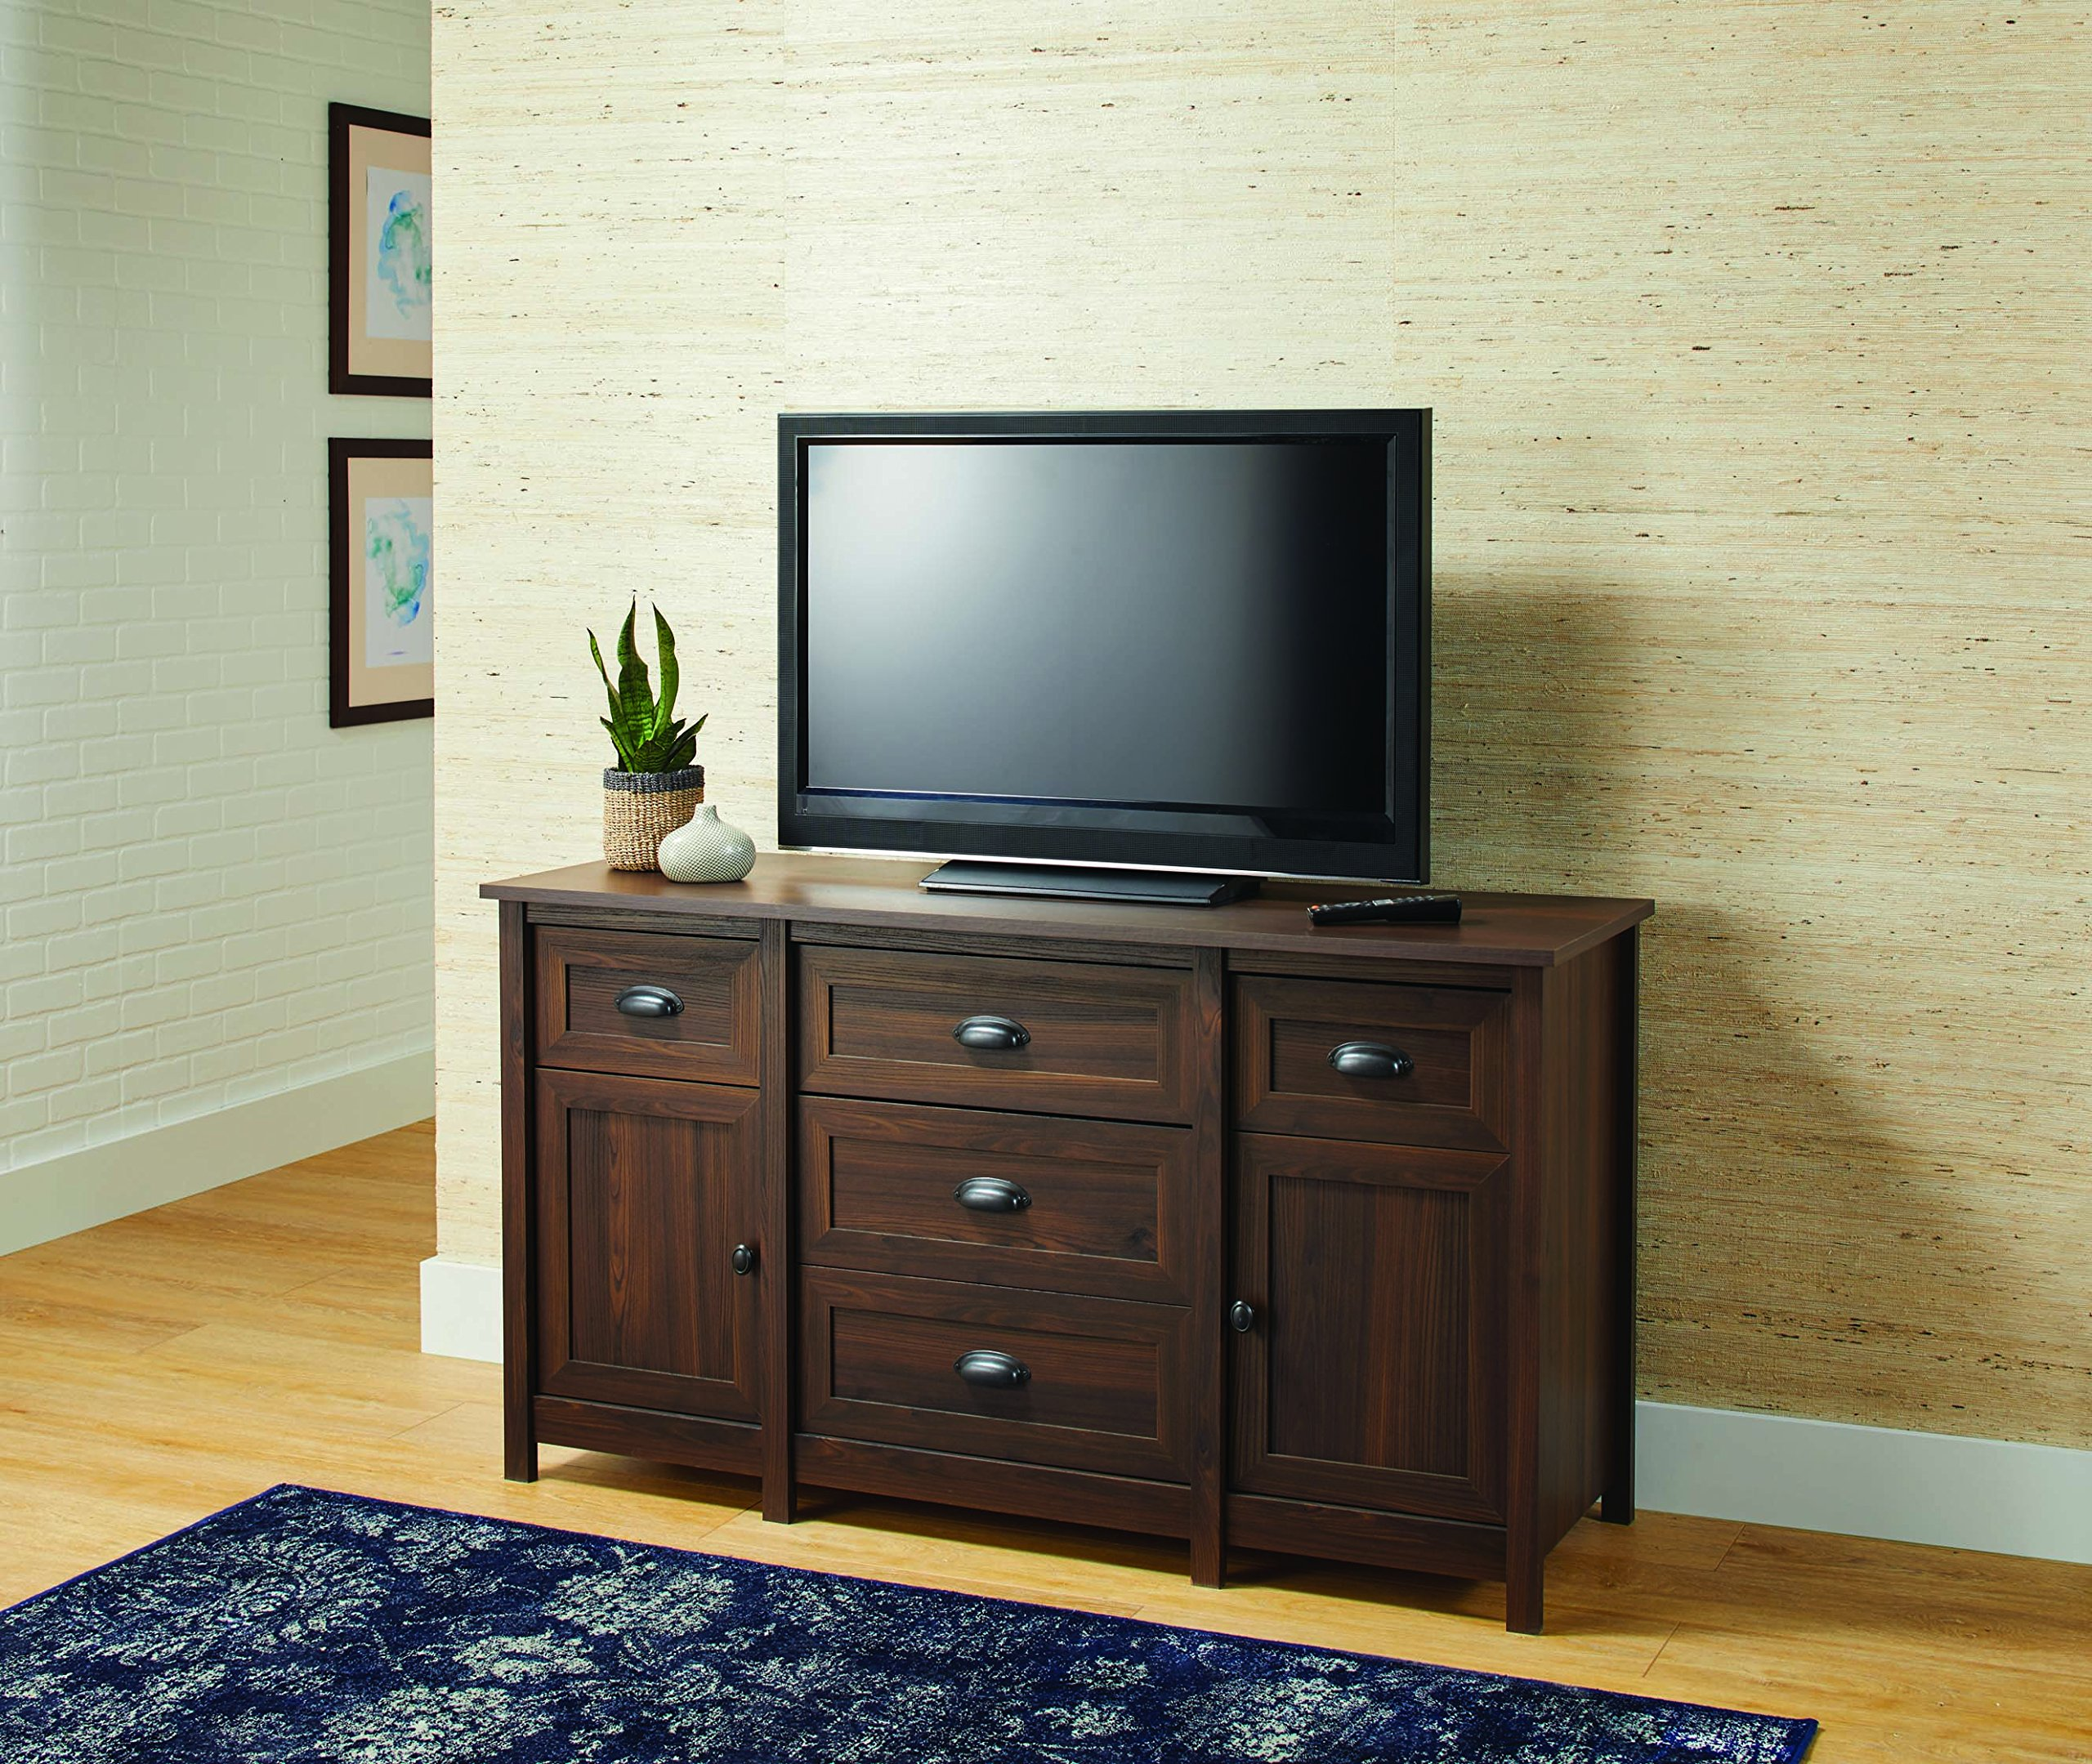 Better Homes and Gardens Lafayette Entertainment Credenza for TVs up to 50'', English Walnut Finish, (57.76 x 19.37 x 32.01 Inches ) by Better Homes and Gardens